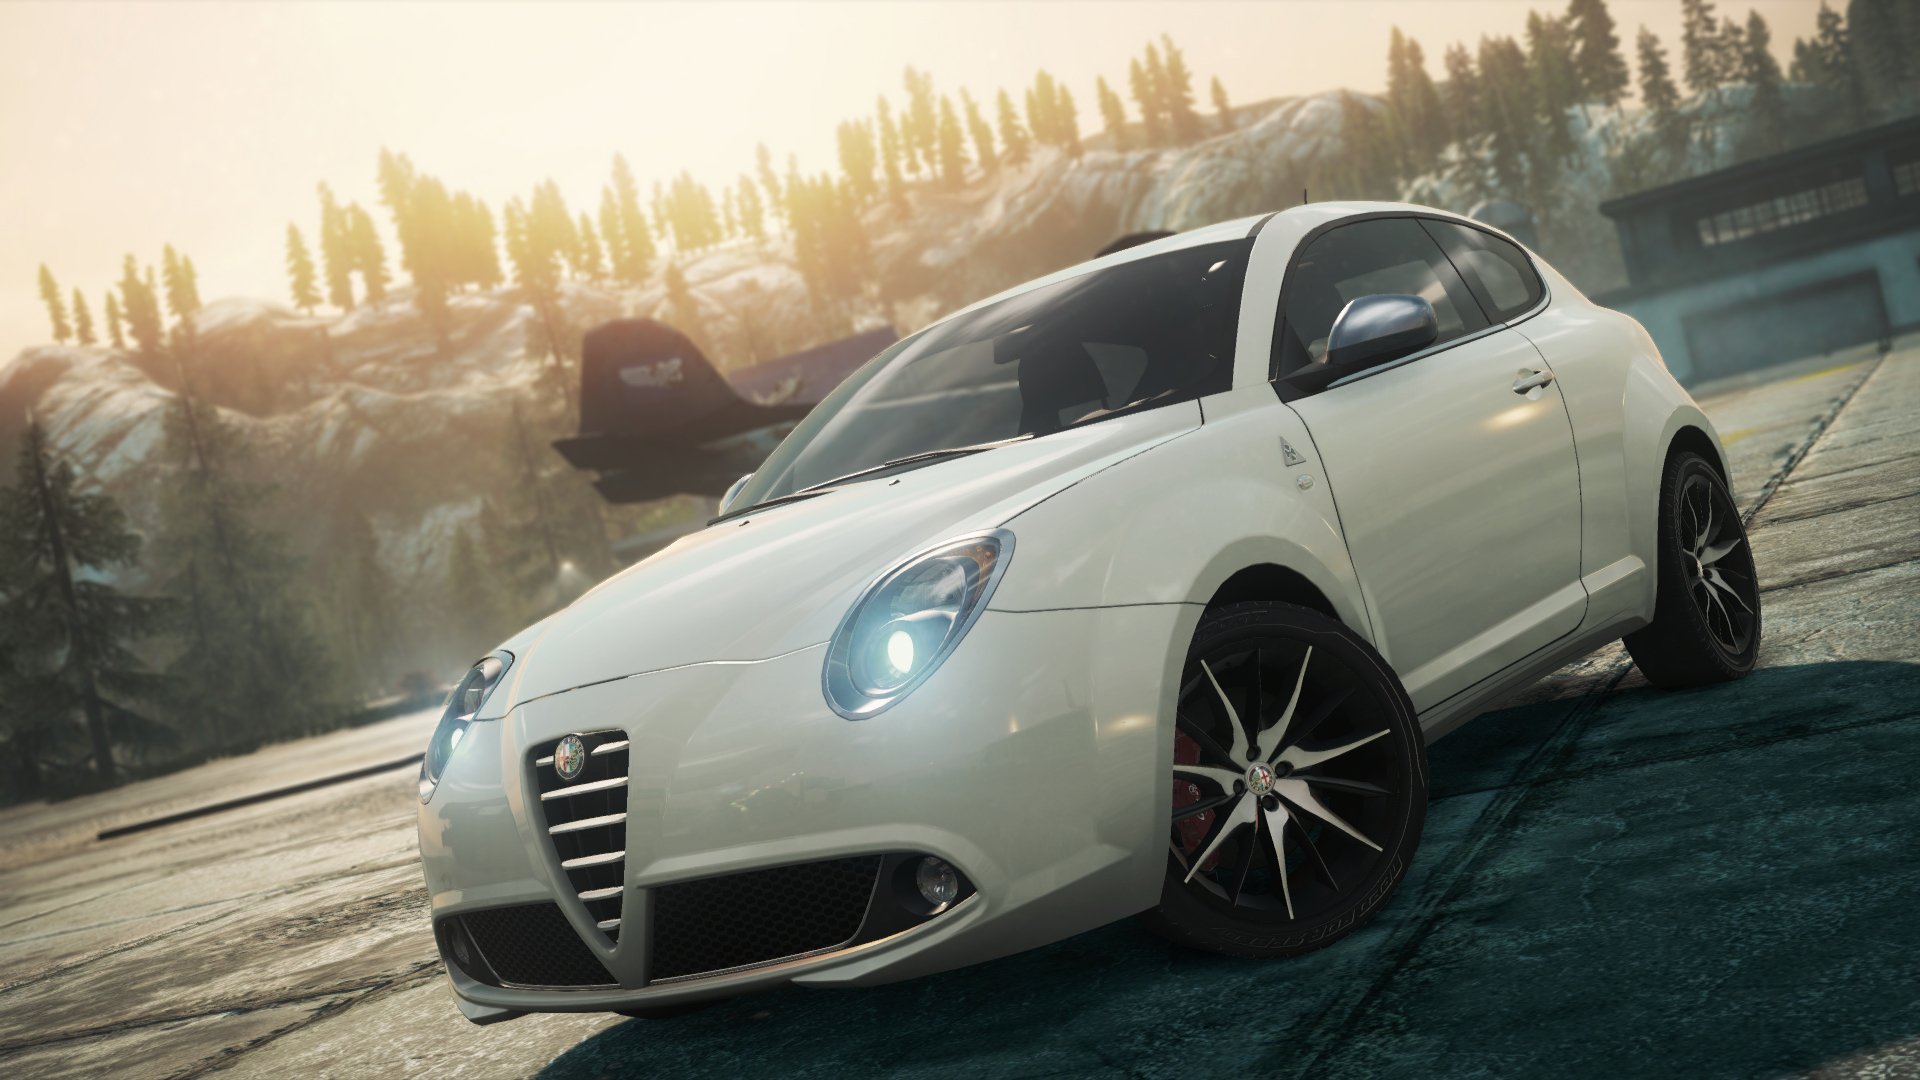 alfa romeo mito qv need for speed wiki fandom powered by wikia. Black Bedroom Furniture Sets. Home Design Ideas